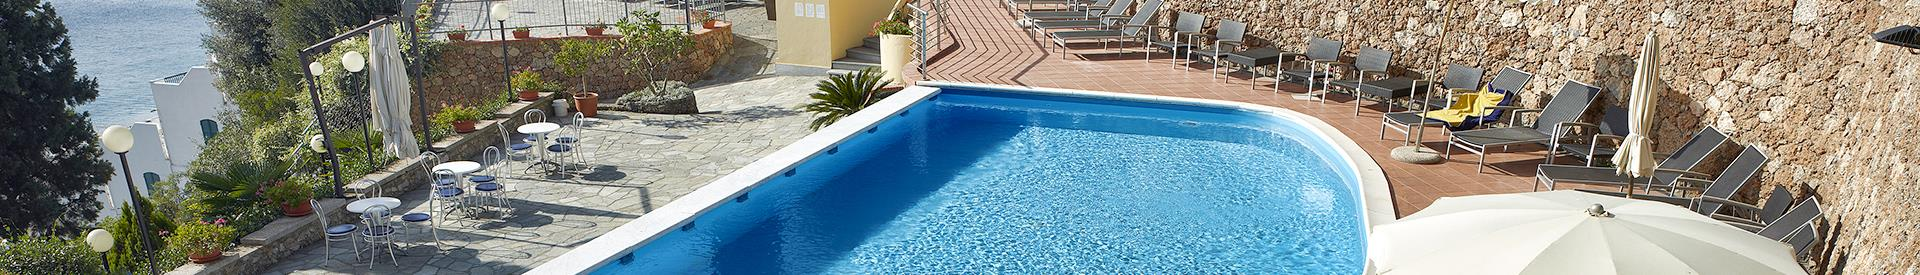 Looking for a hotel for your stay in Spotorno (SV)? Book/reserve at the Best Western Hotel Acqua Novella